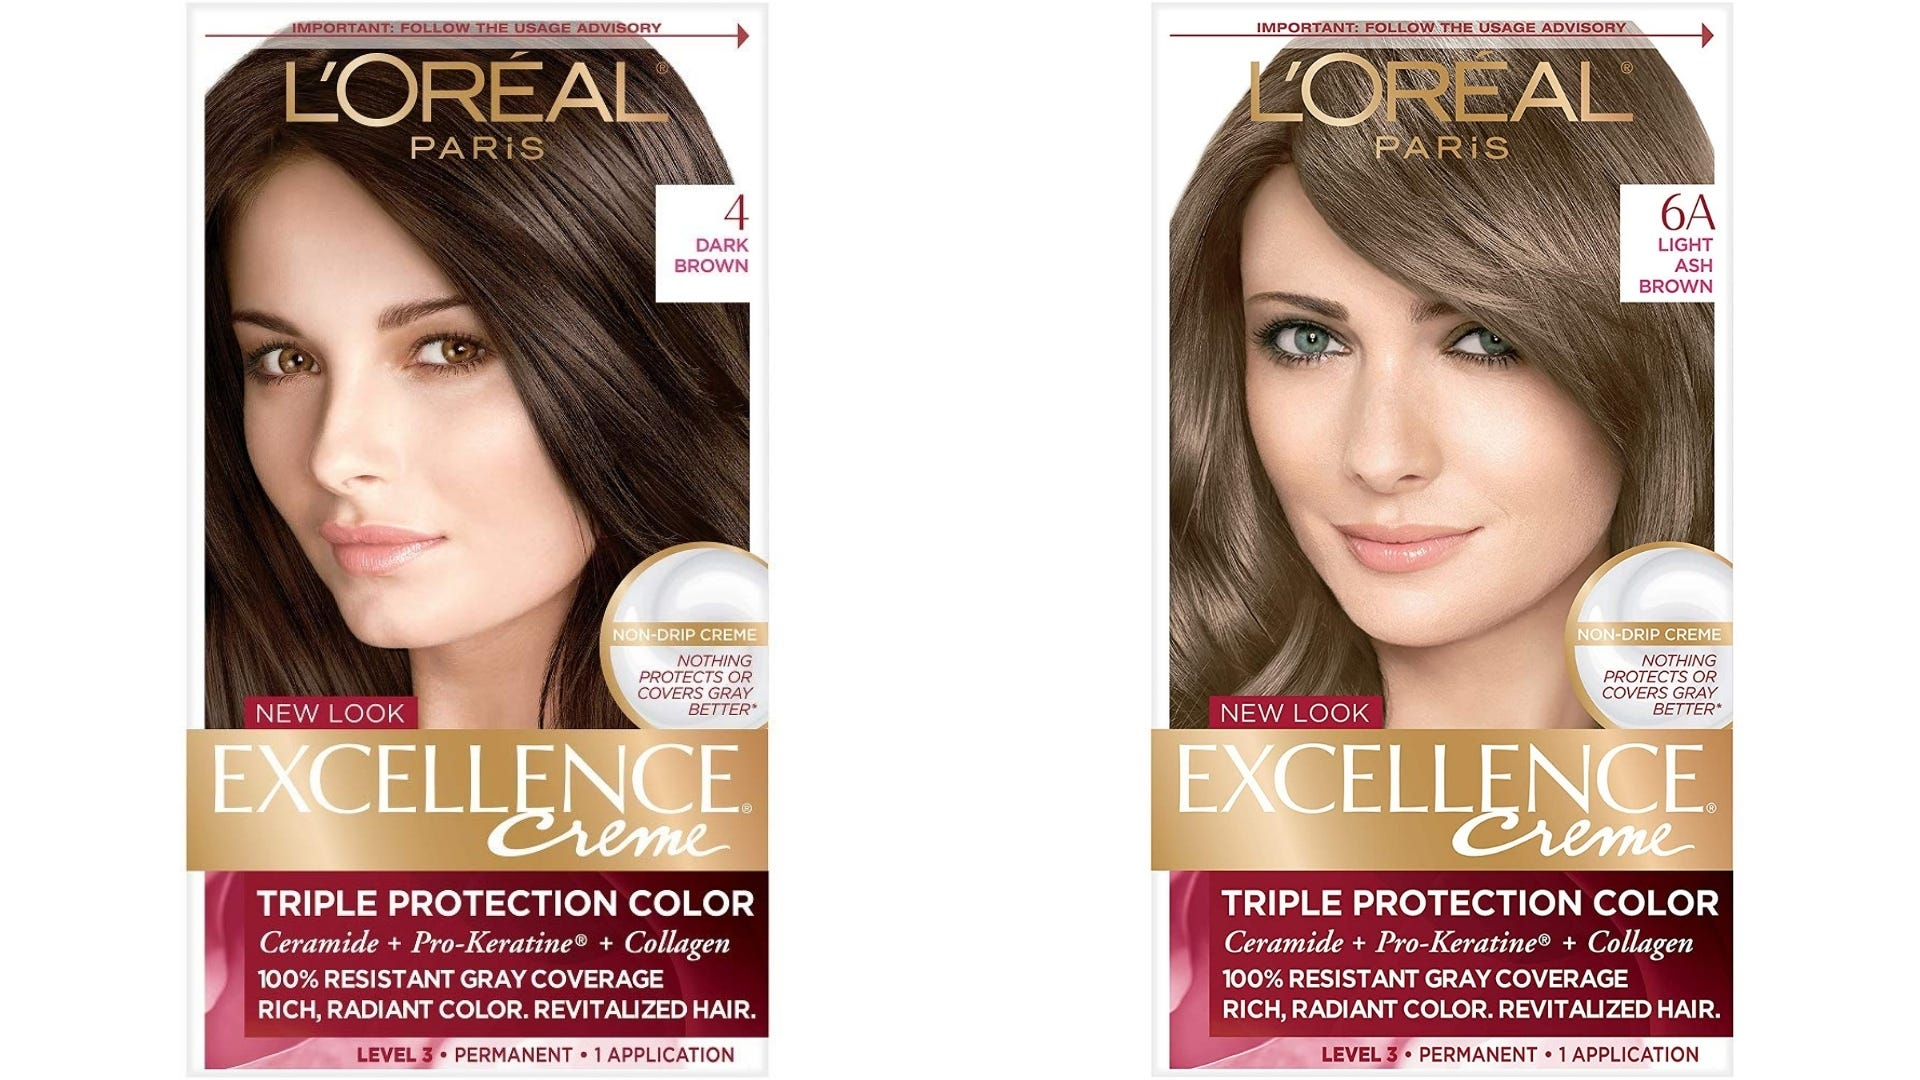 Two boxes of L'Oreal hair dye